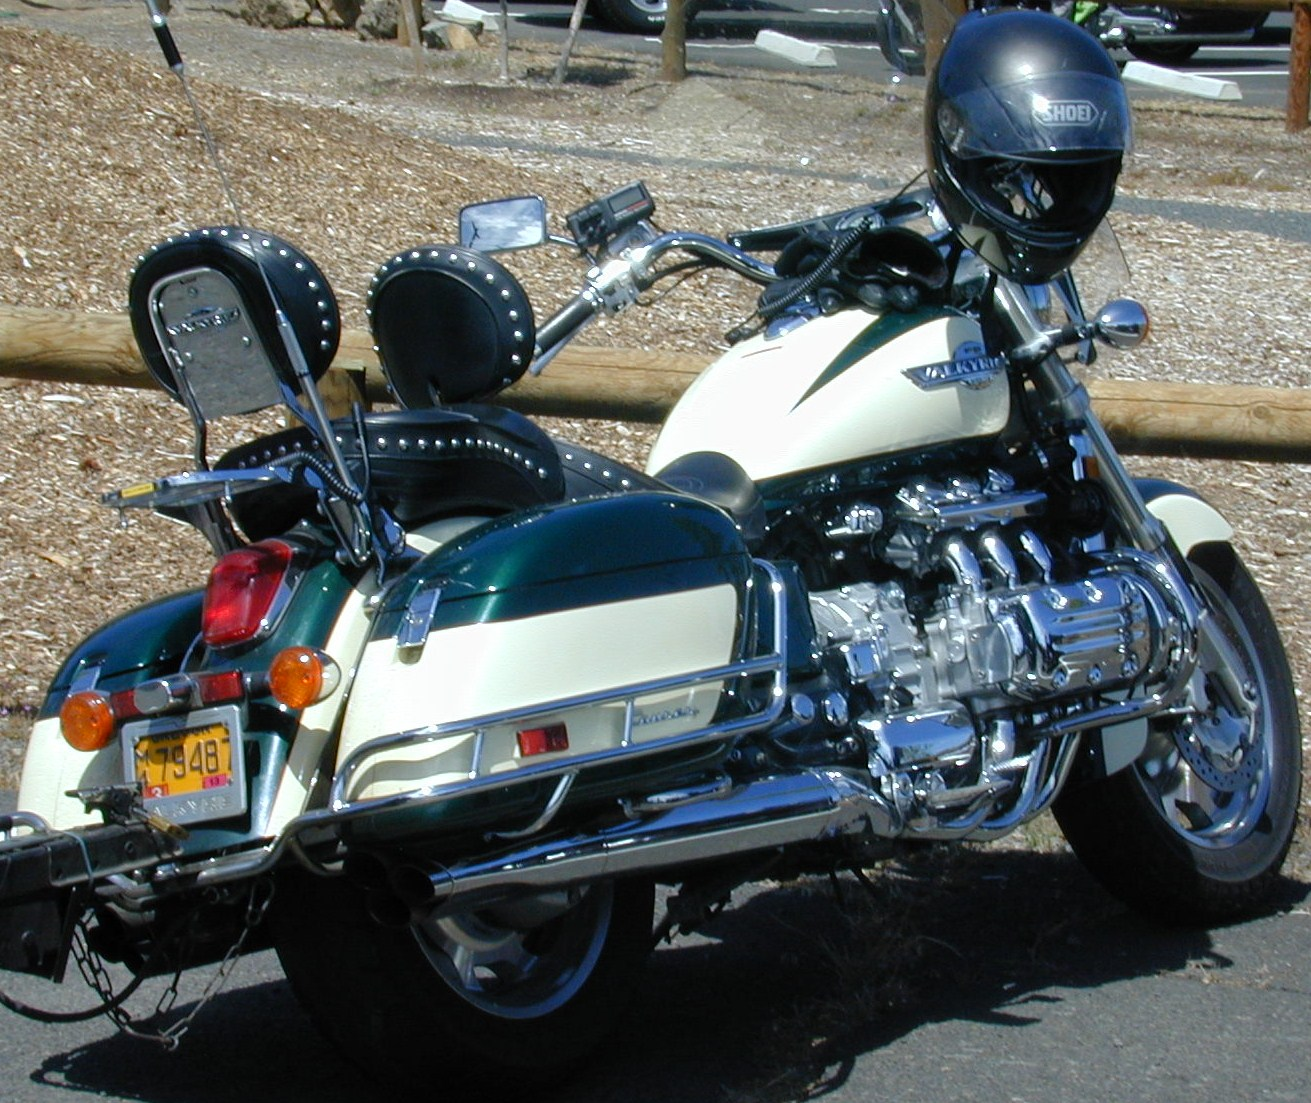 Click image for larger version  Name:Pilot Butte SP OR  7-11 golden wings motorcycle 004.JPG Views:93 Size:390.4 KB ID:148607